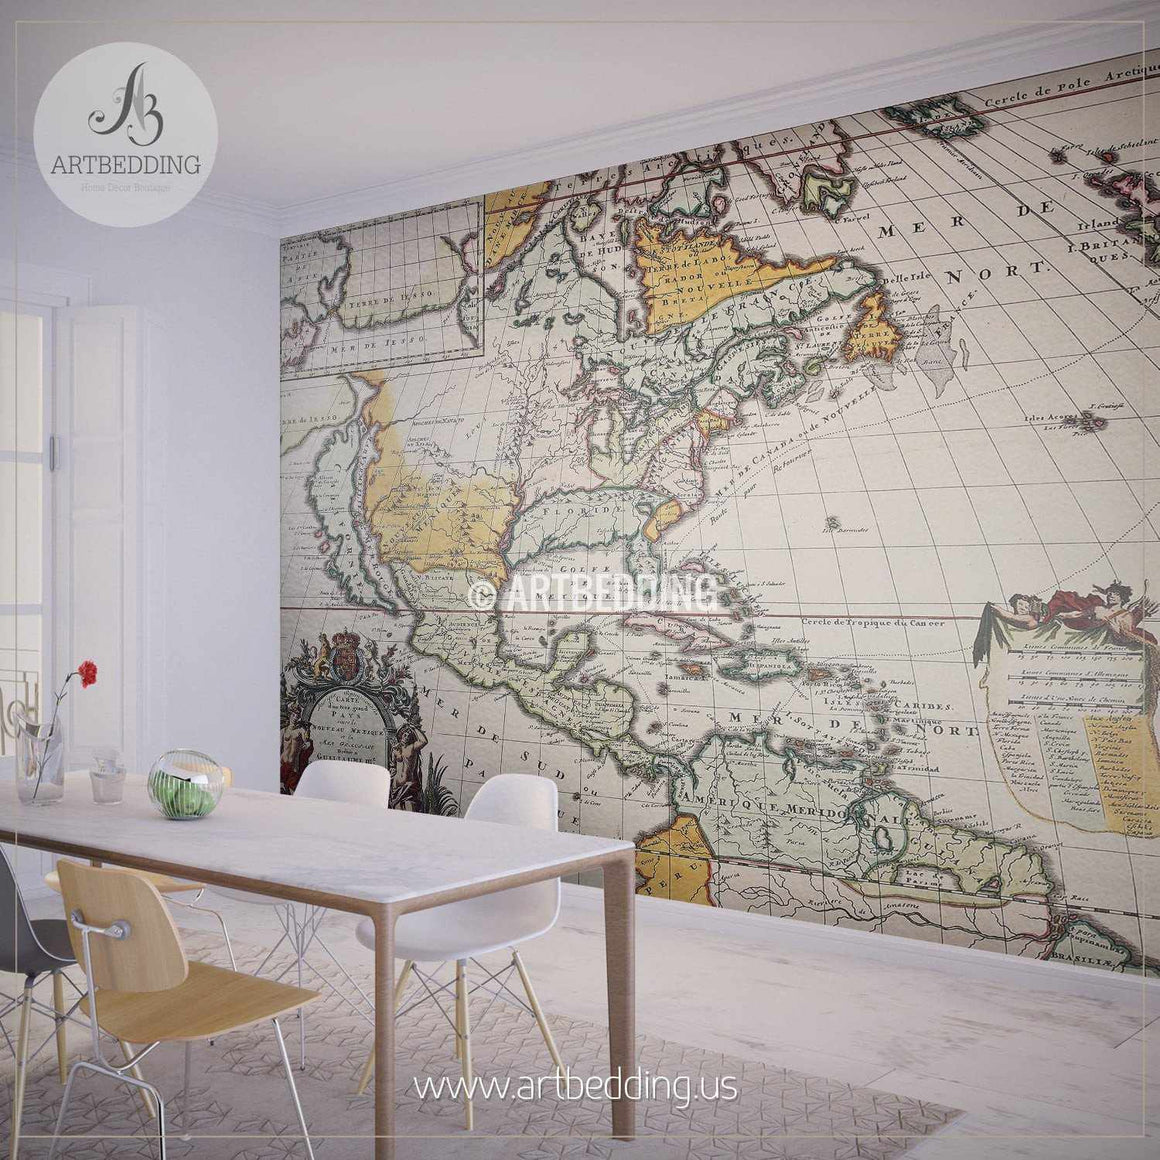 Old North American Map Wall Mural, Self Adhesive Peel & Stick Photo Mural, Atlas wall mural, mural home decor wall mural